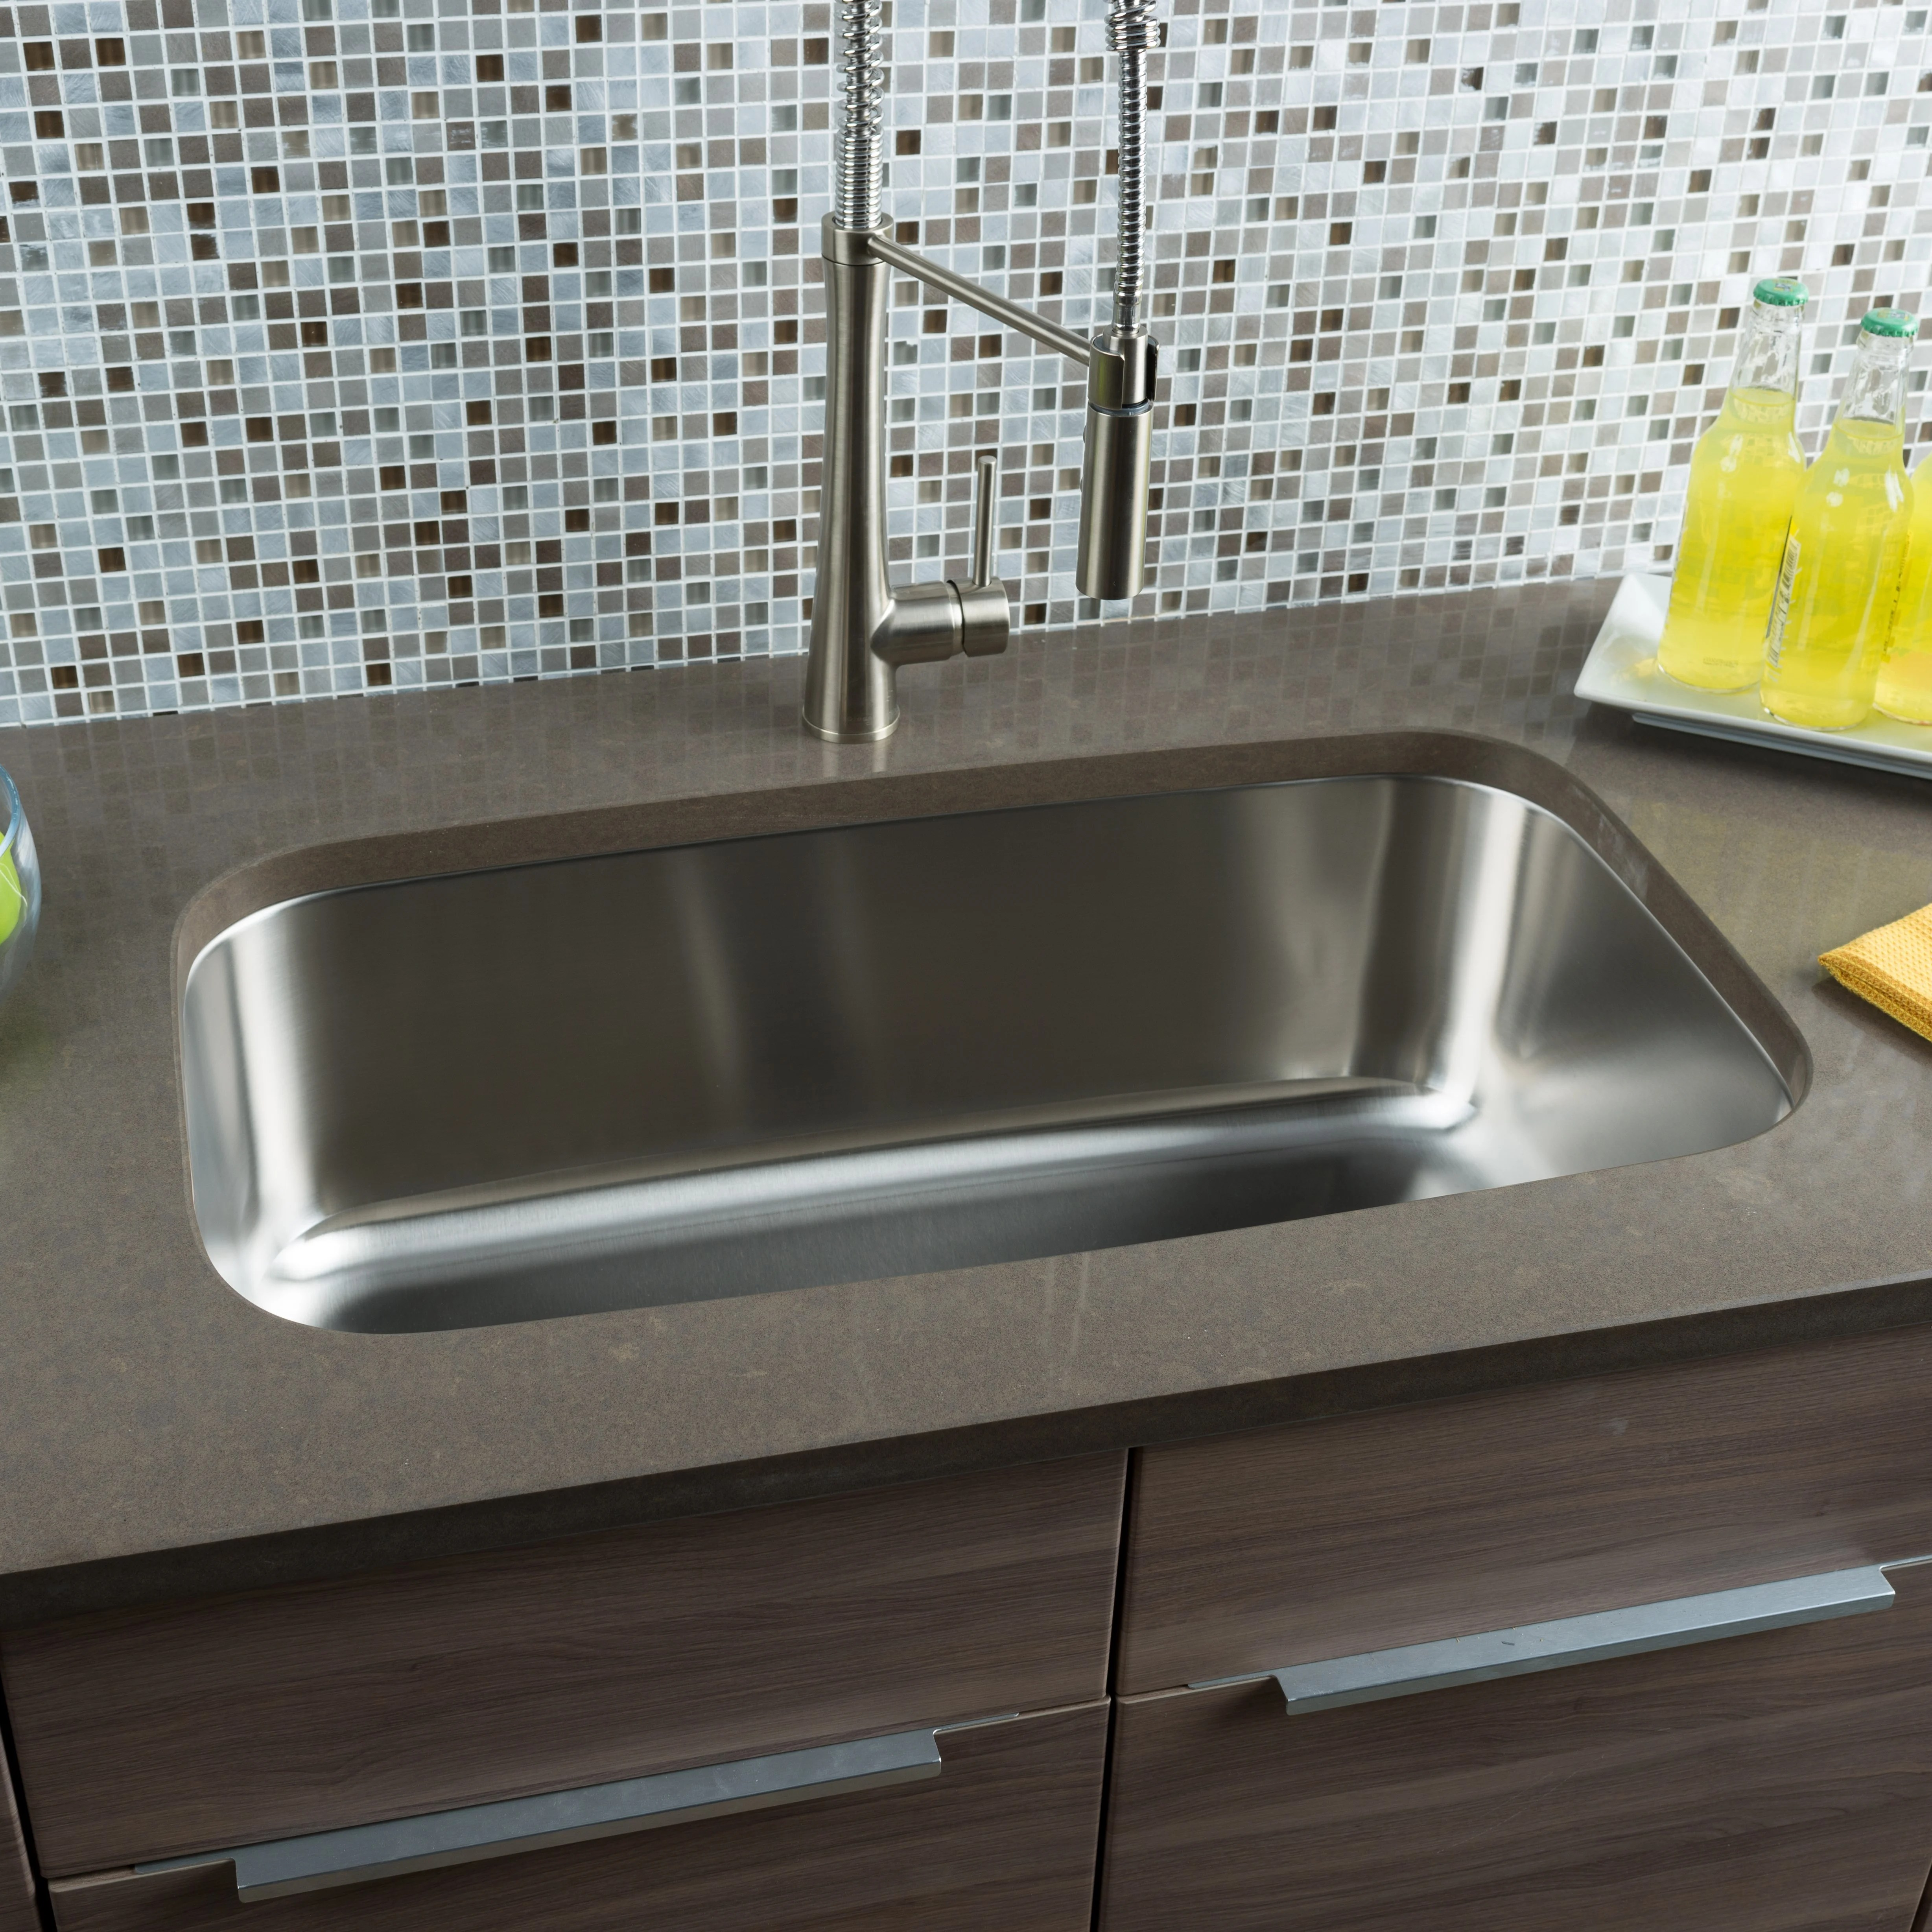 Kitchen Sinks l c O~Hahn hahn kitchen sinks Hahn